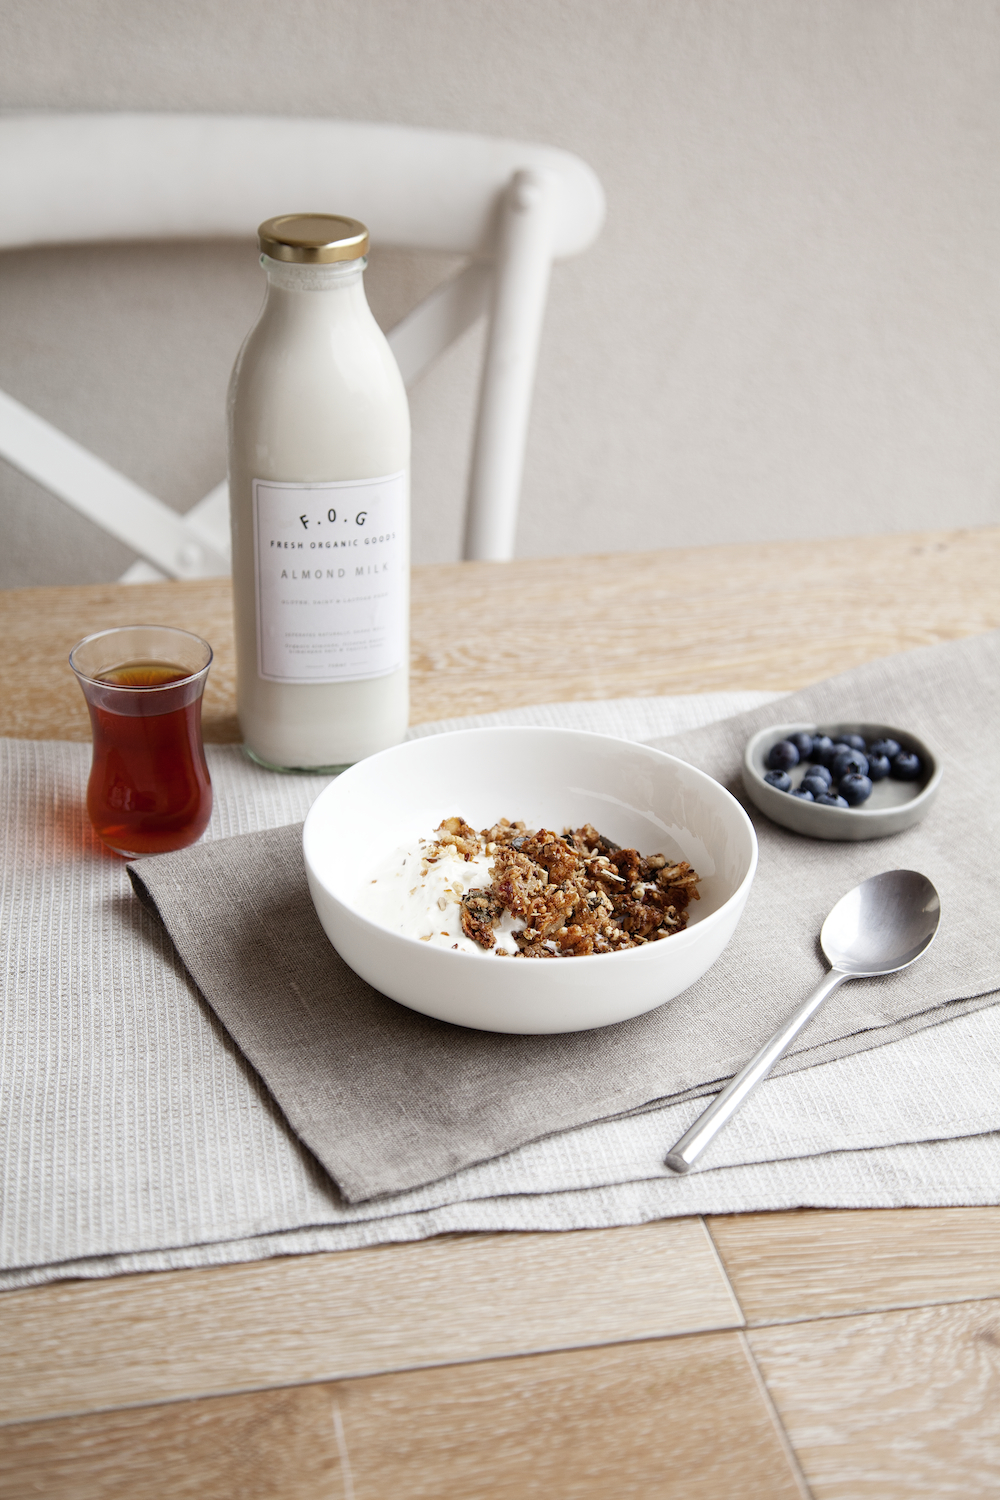 Photography by Elisa Watson. Pictured: Fresh Organic Goods Almond Milk.